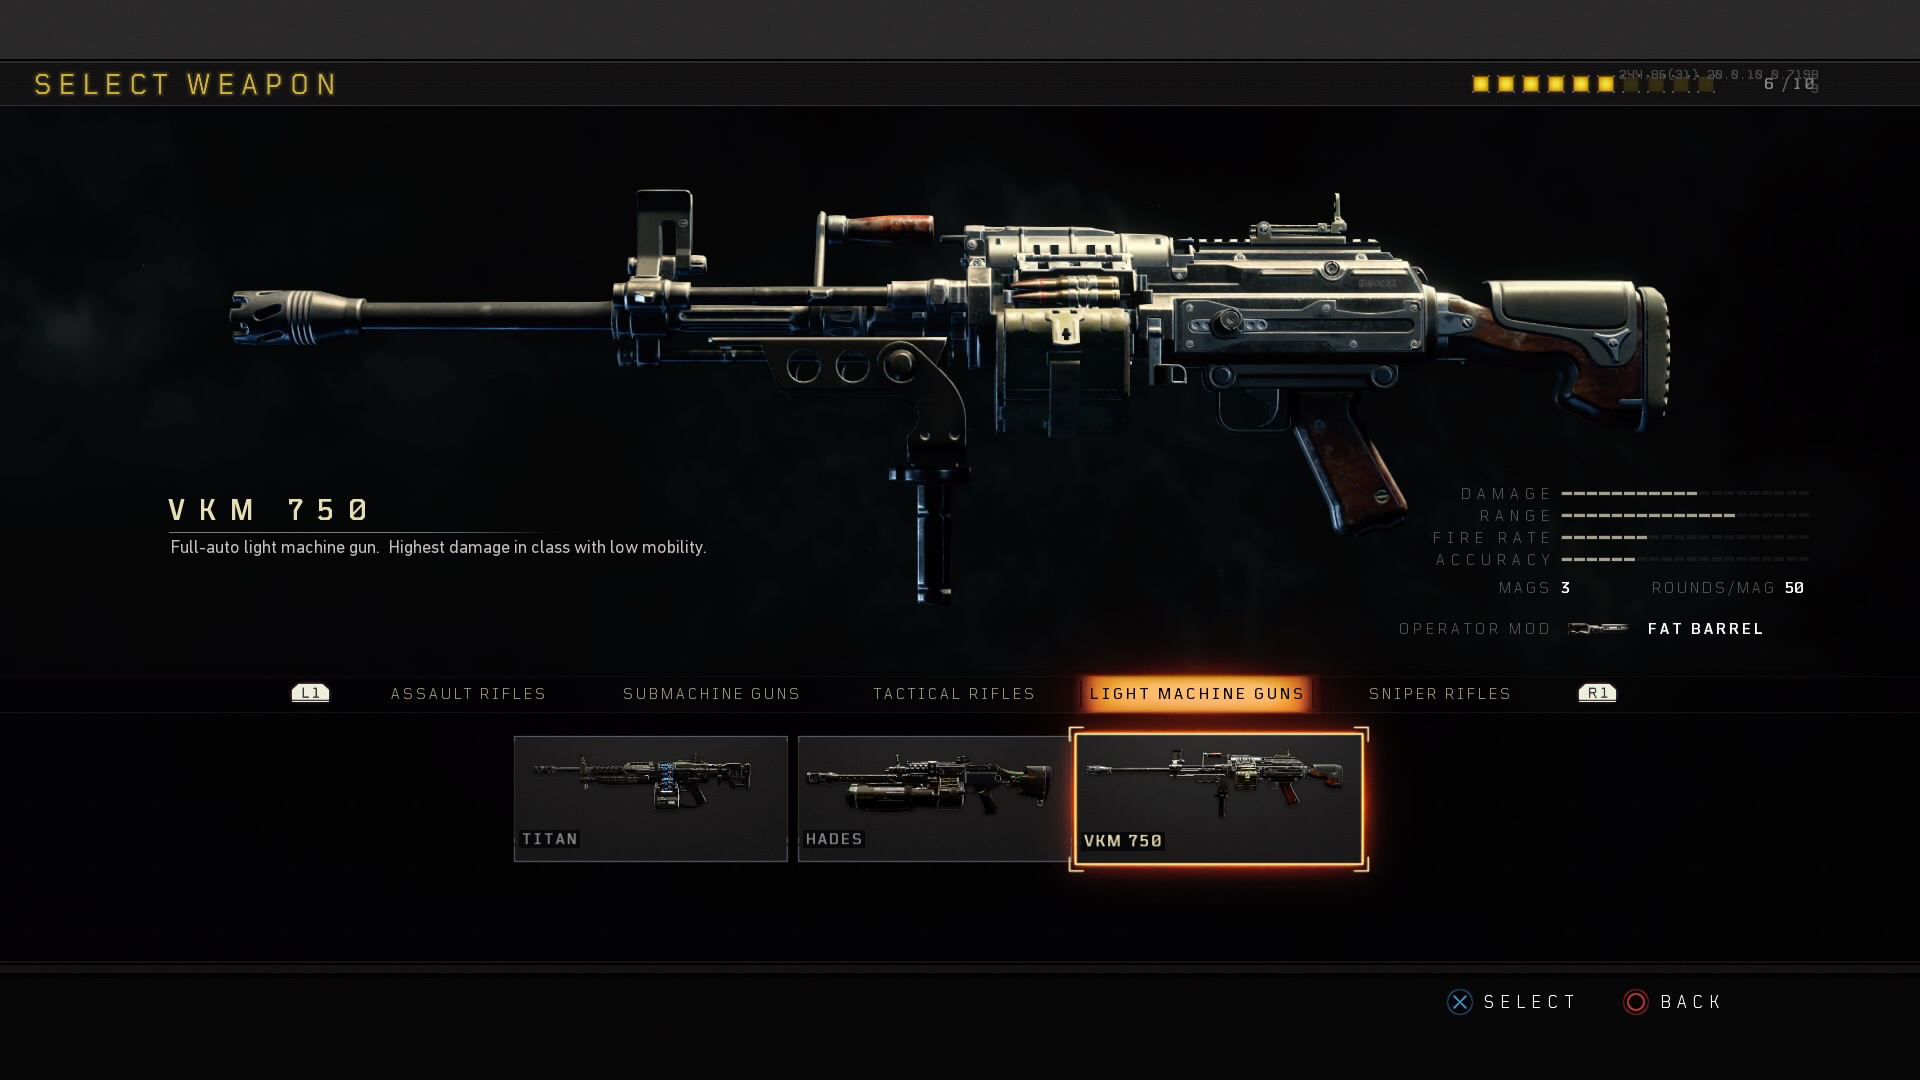 Call of Duty: Black Ops 4 Complete Weapon List | Dot Esports